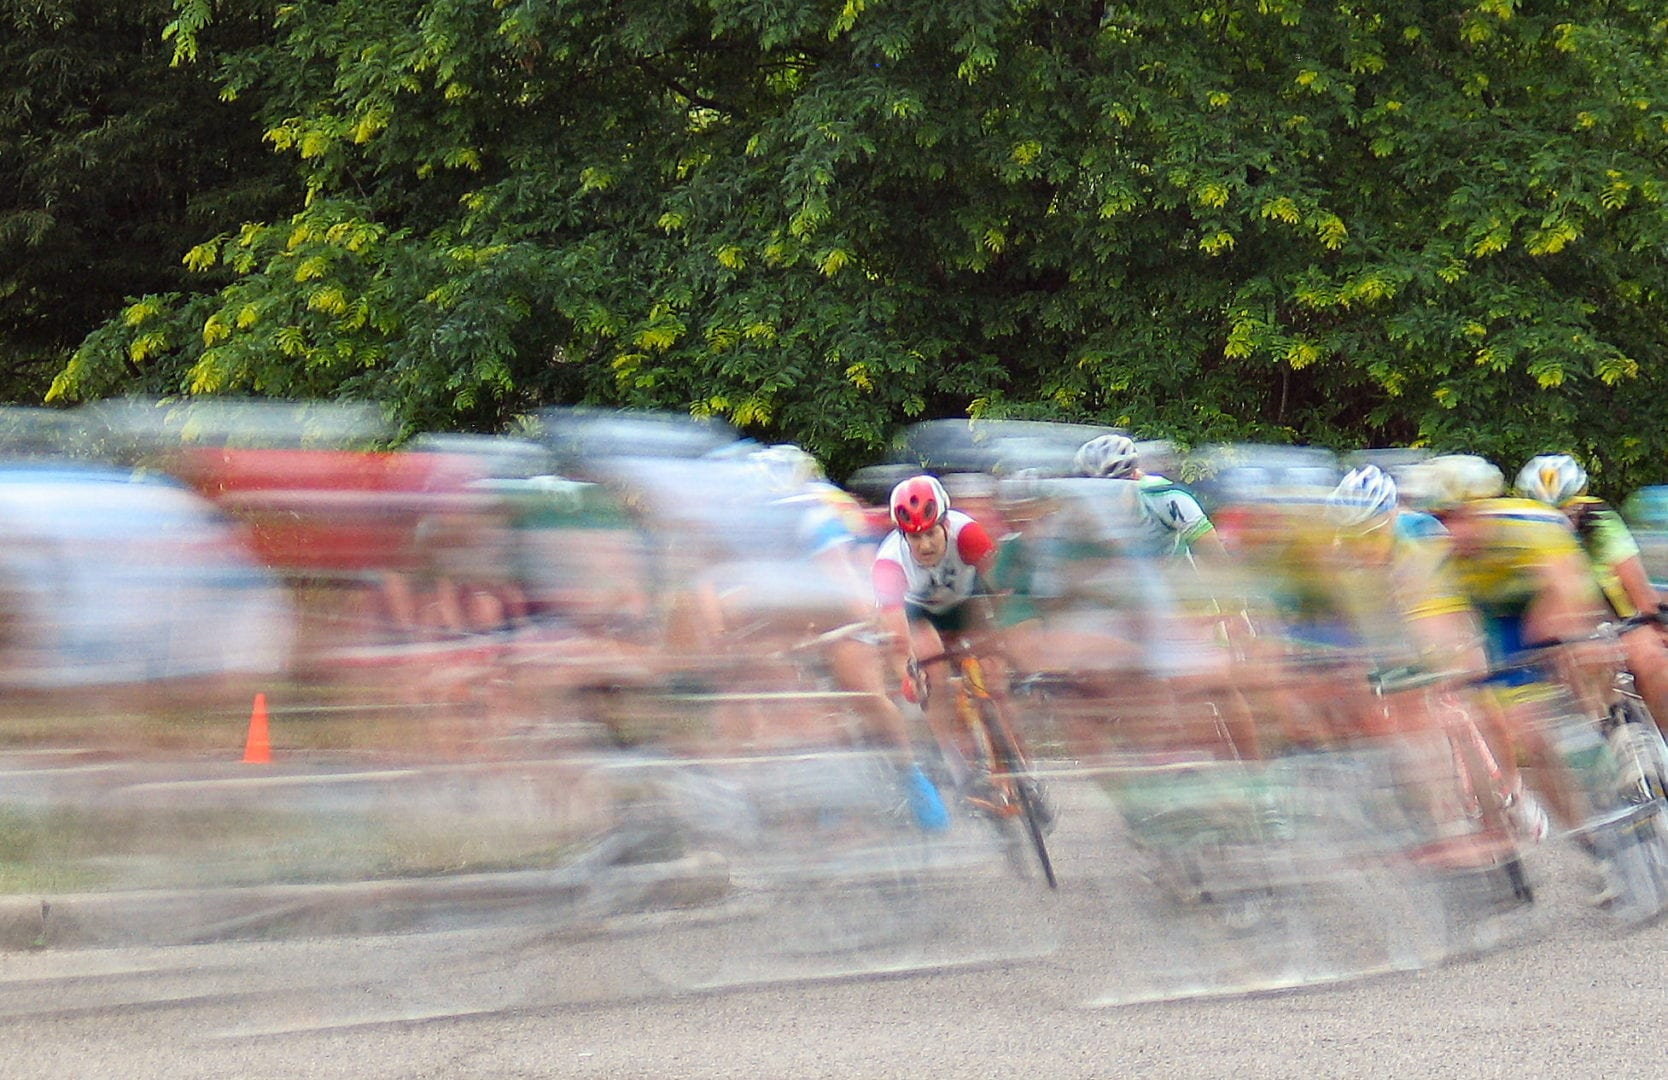 A focused image on a lone cyclist